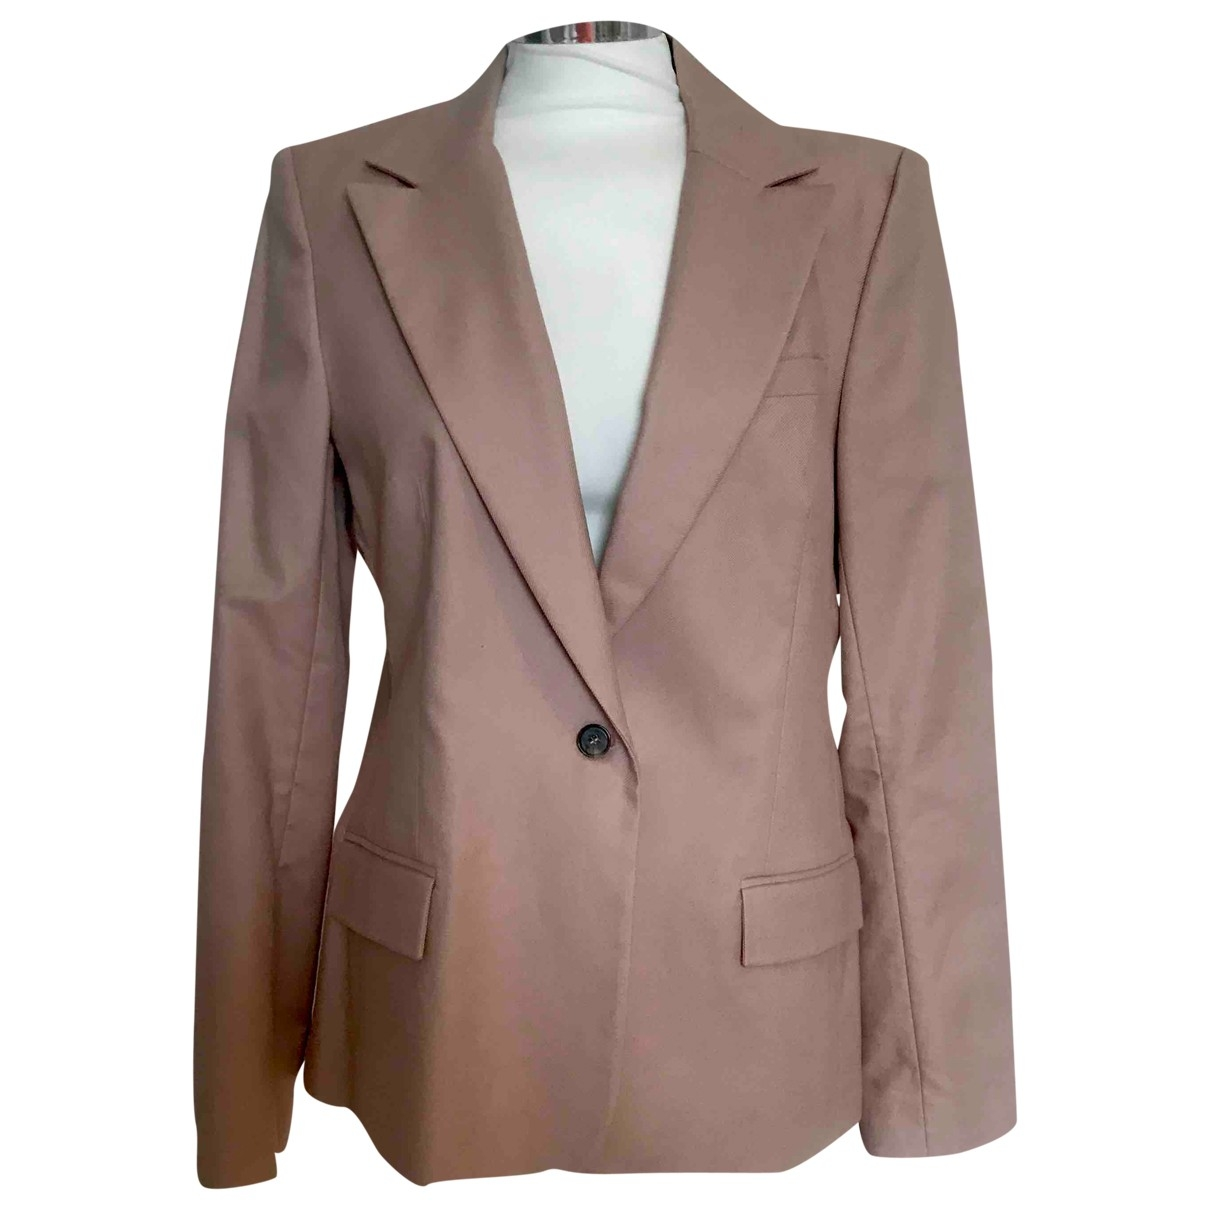 Reiss \N Jacke in  Rosa Synthetik